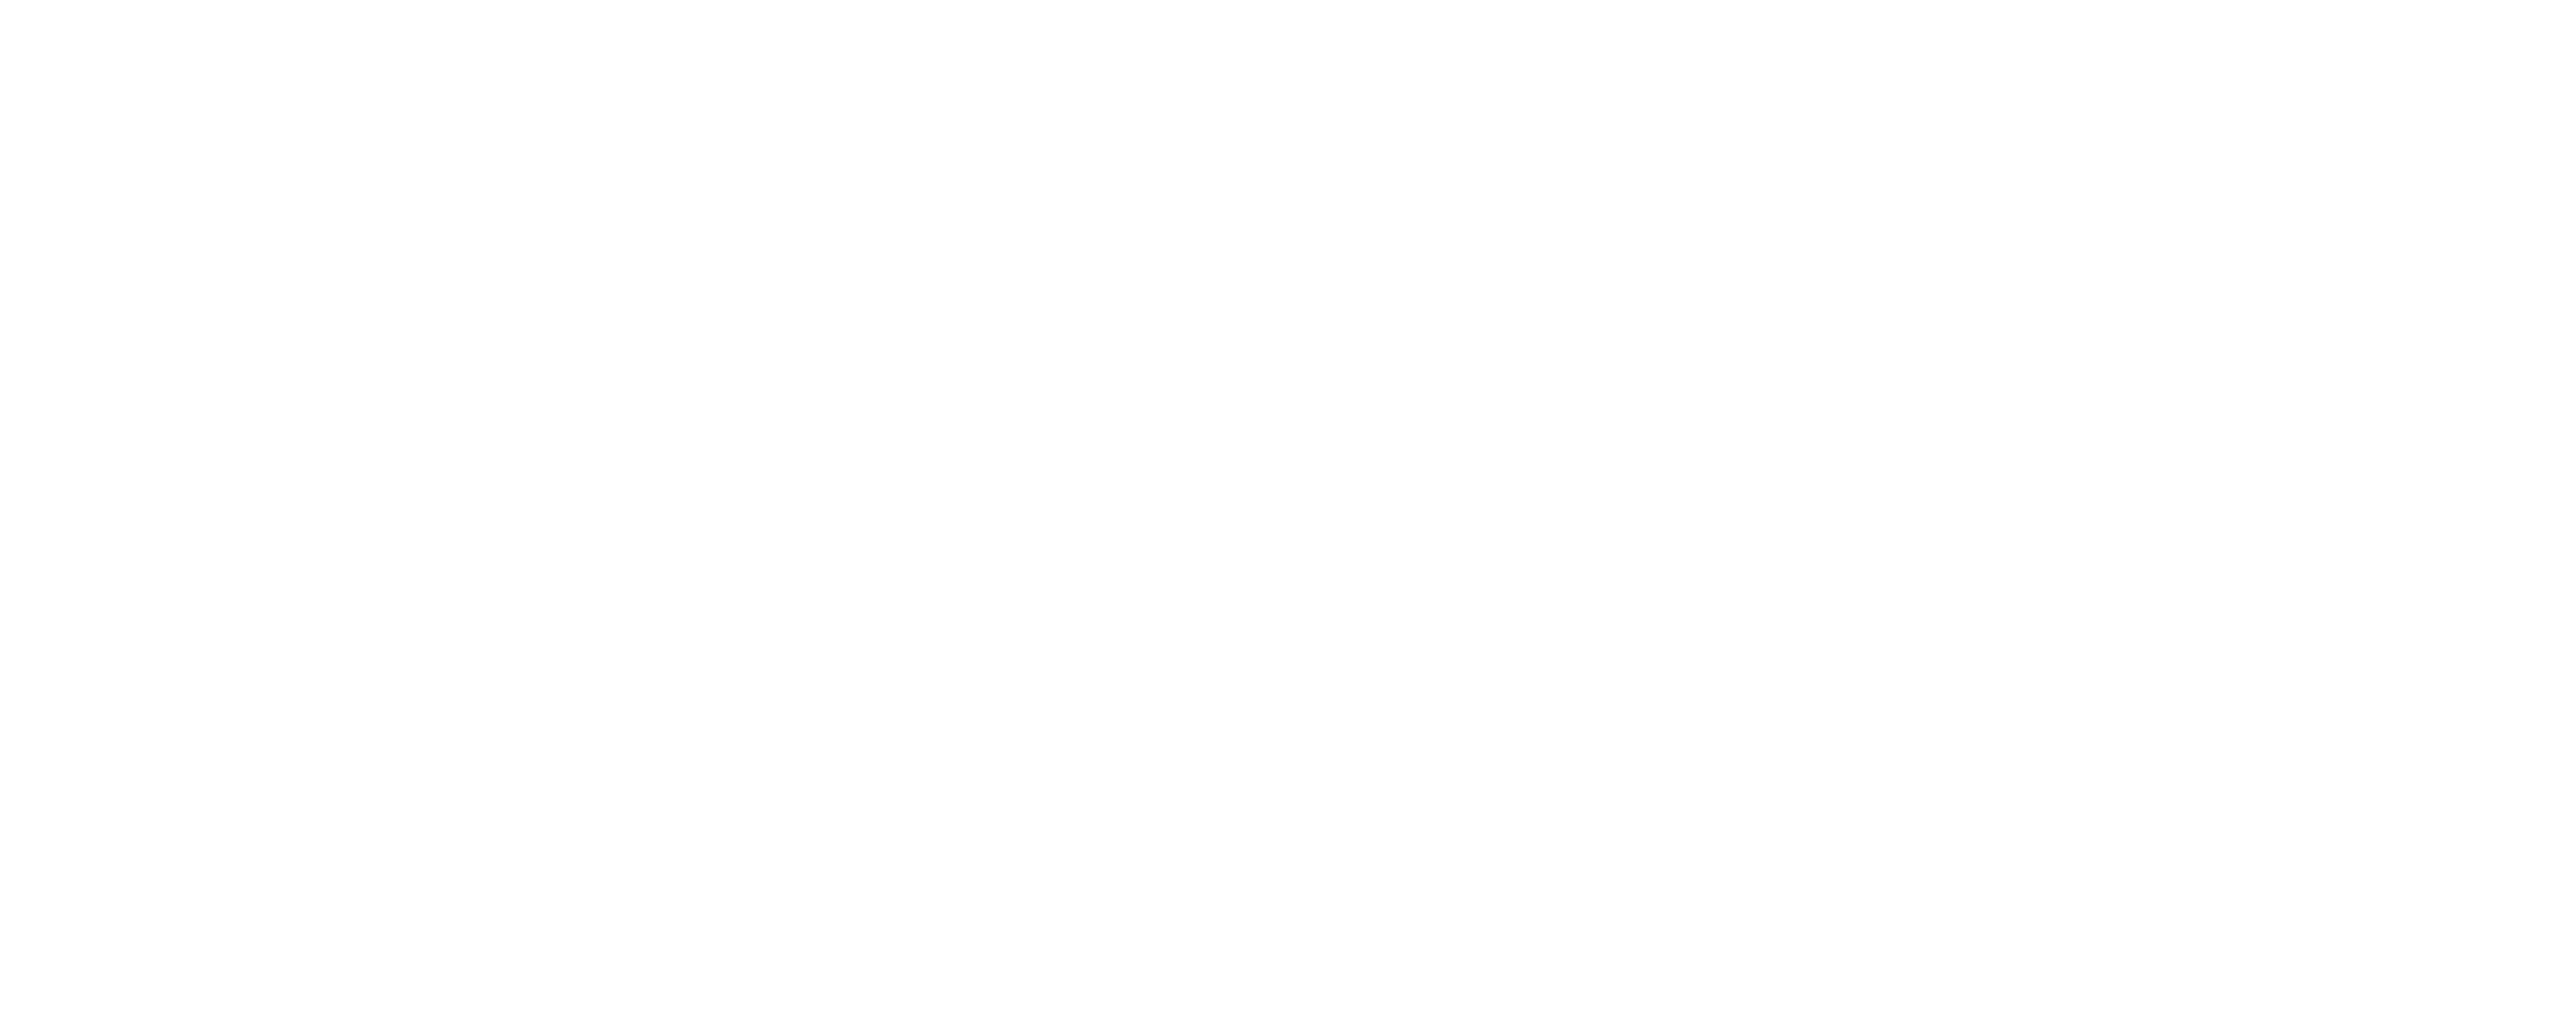 Add a Smile Station to your event!